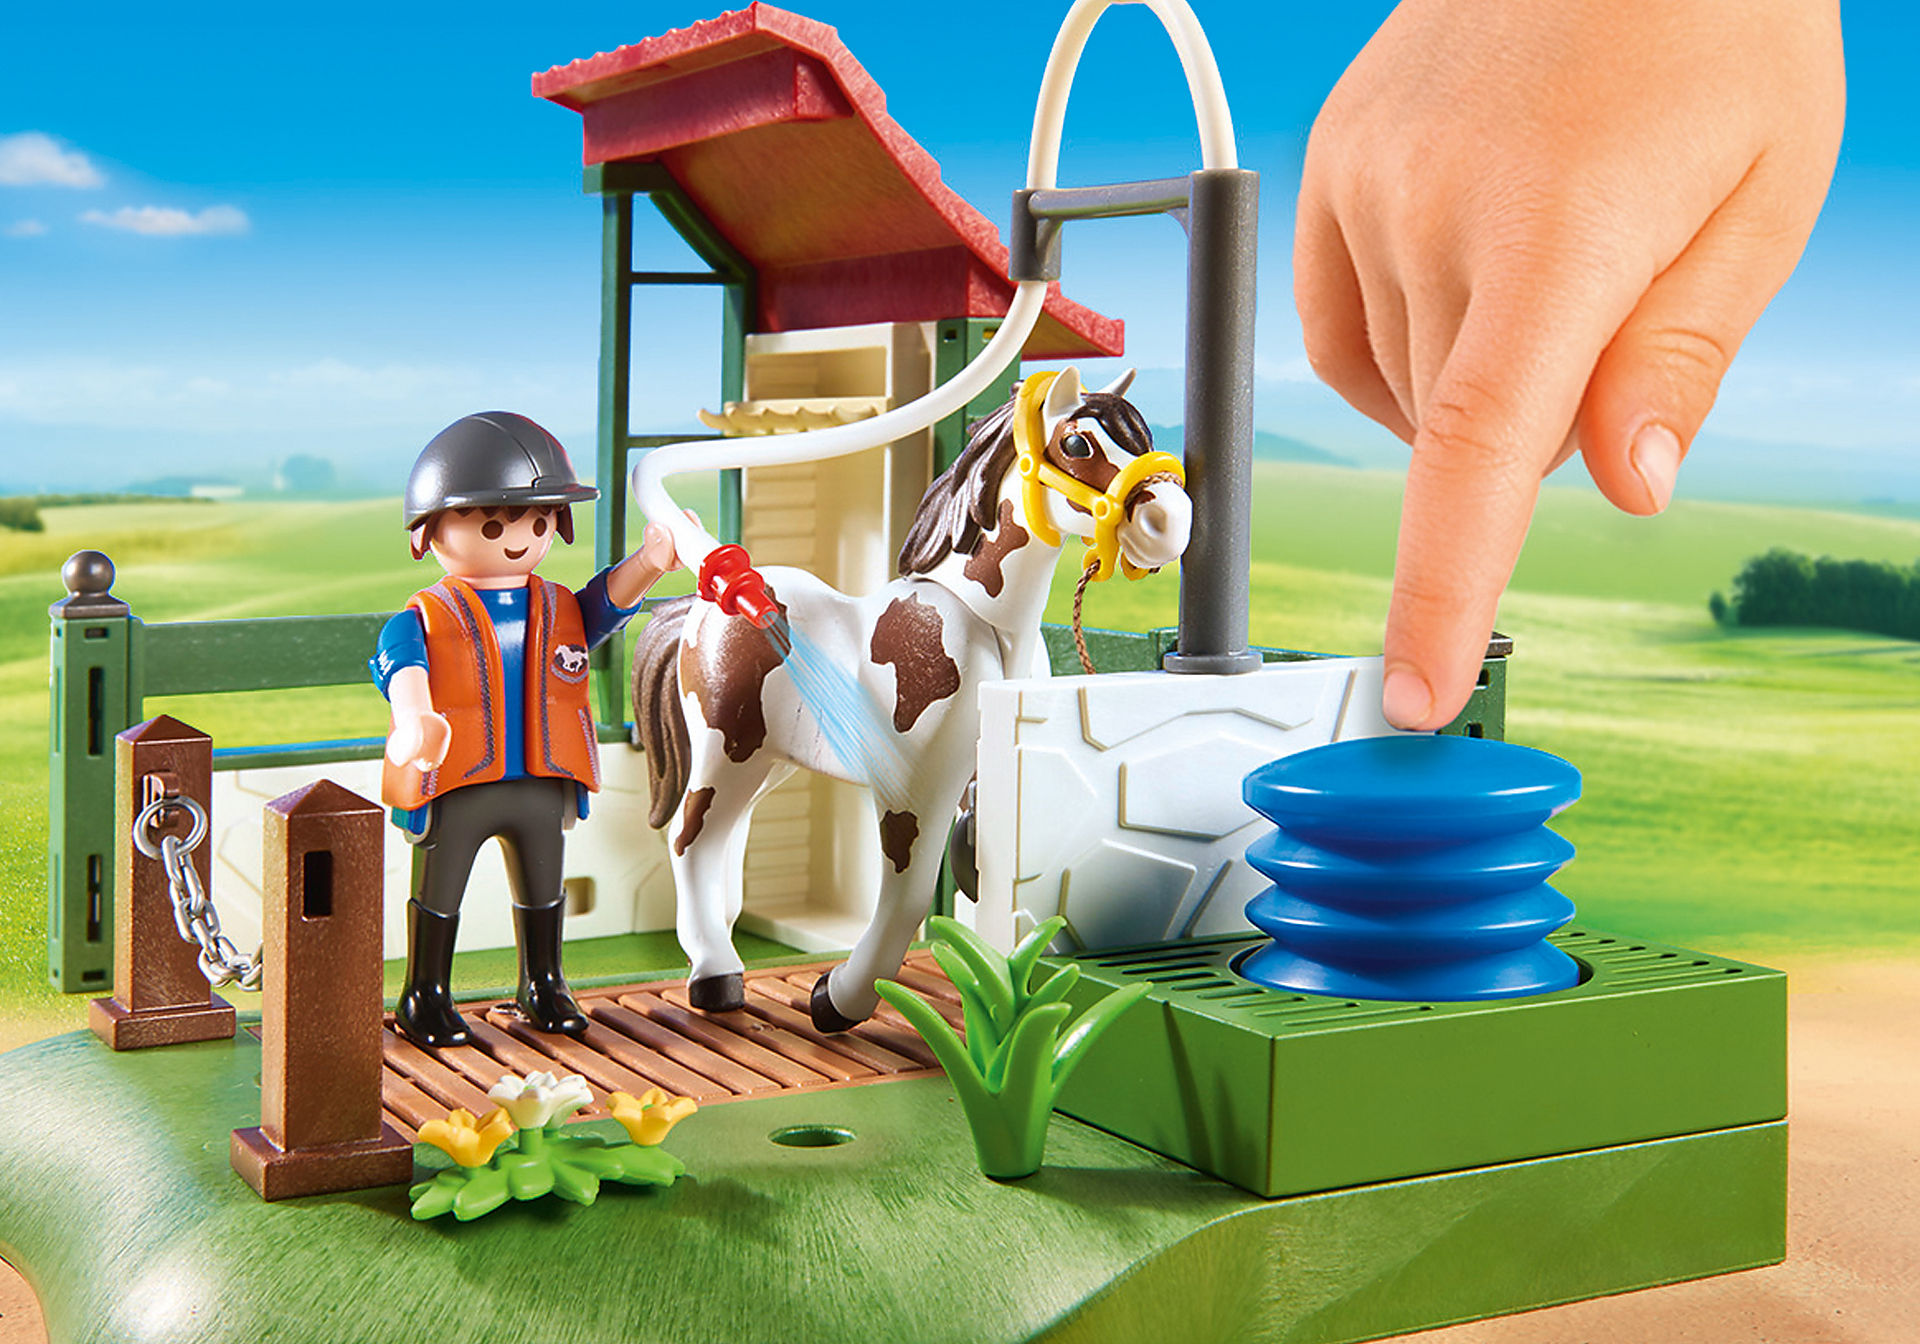 http://media.playmobil.com/i/playmobil/6929_product_extra1/Box de lavage pour chevaux